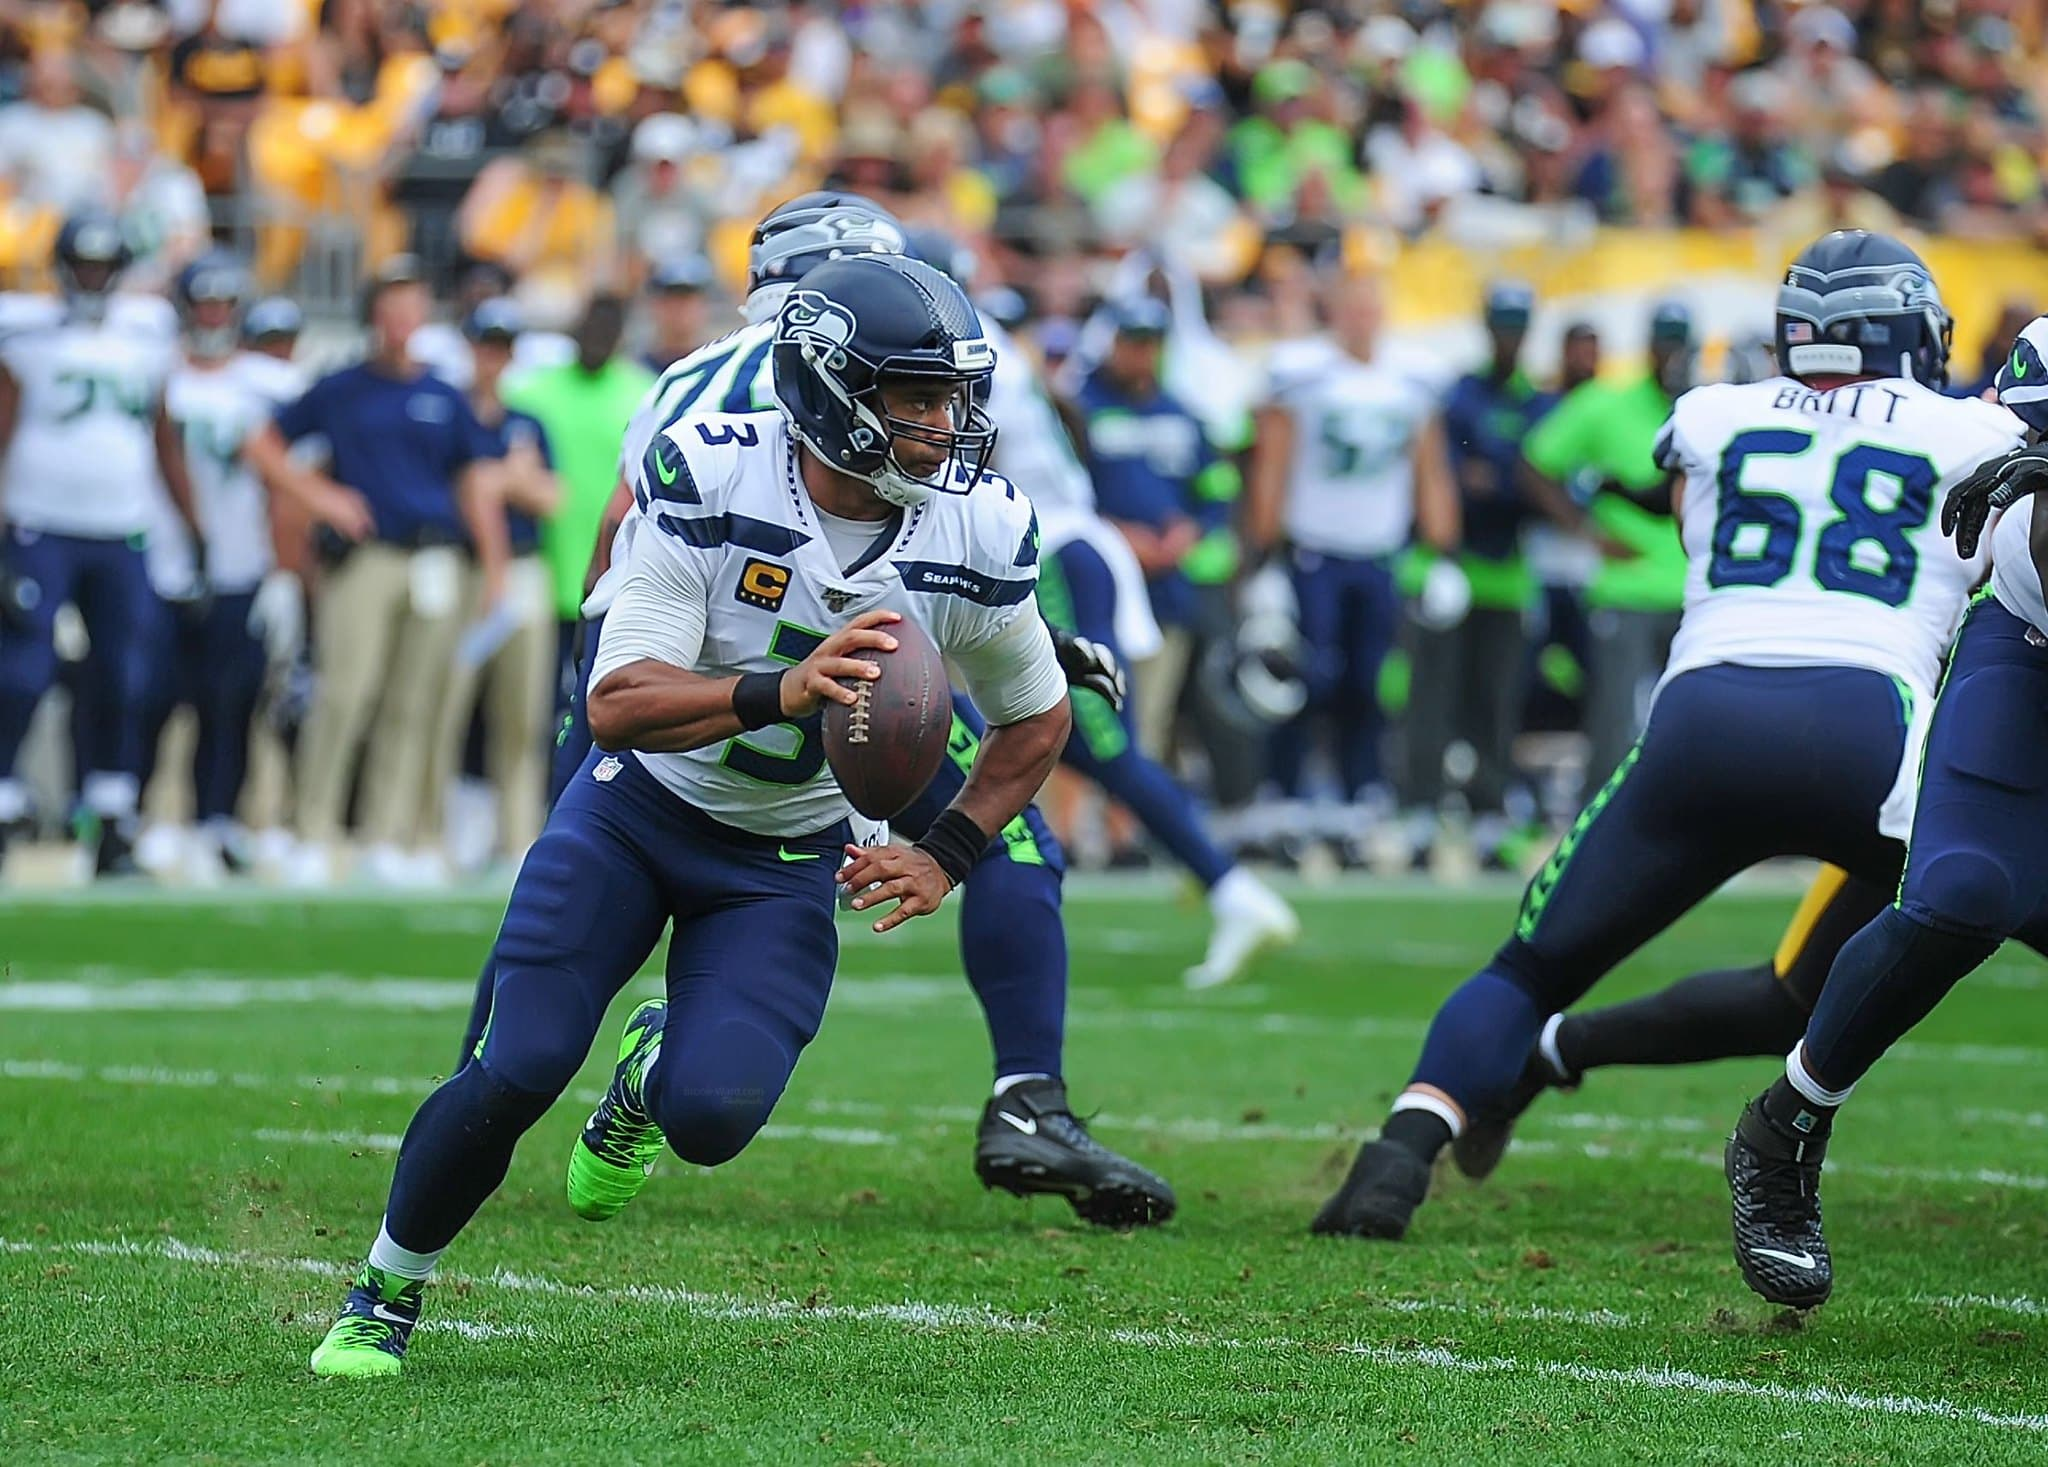 Seattle Seahawks Top the NFC West Following a Victory Over Arizona Cardinals, 28-21